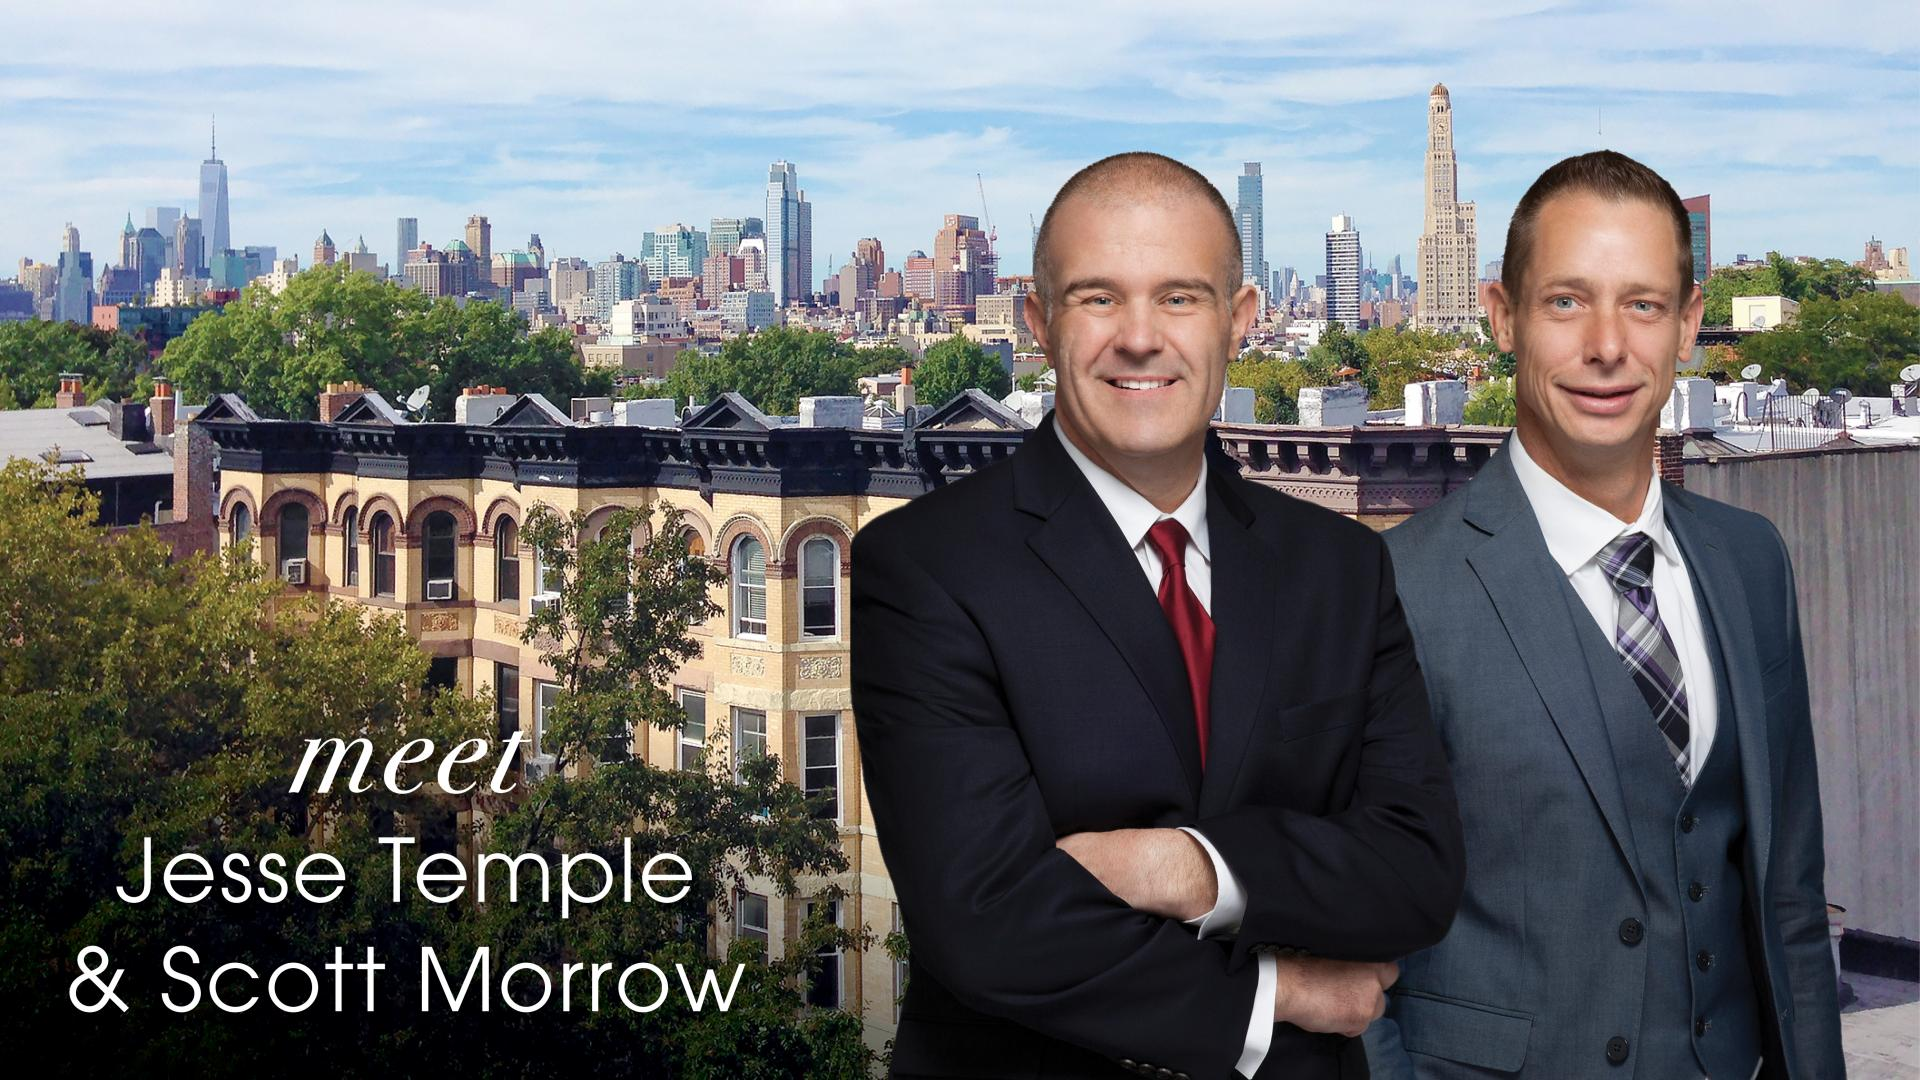 Meet Jesse Temple and Scott Morrow